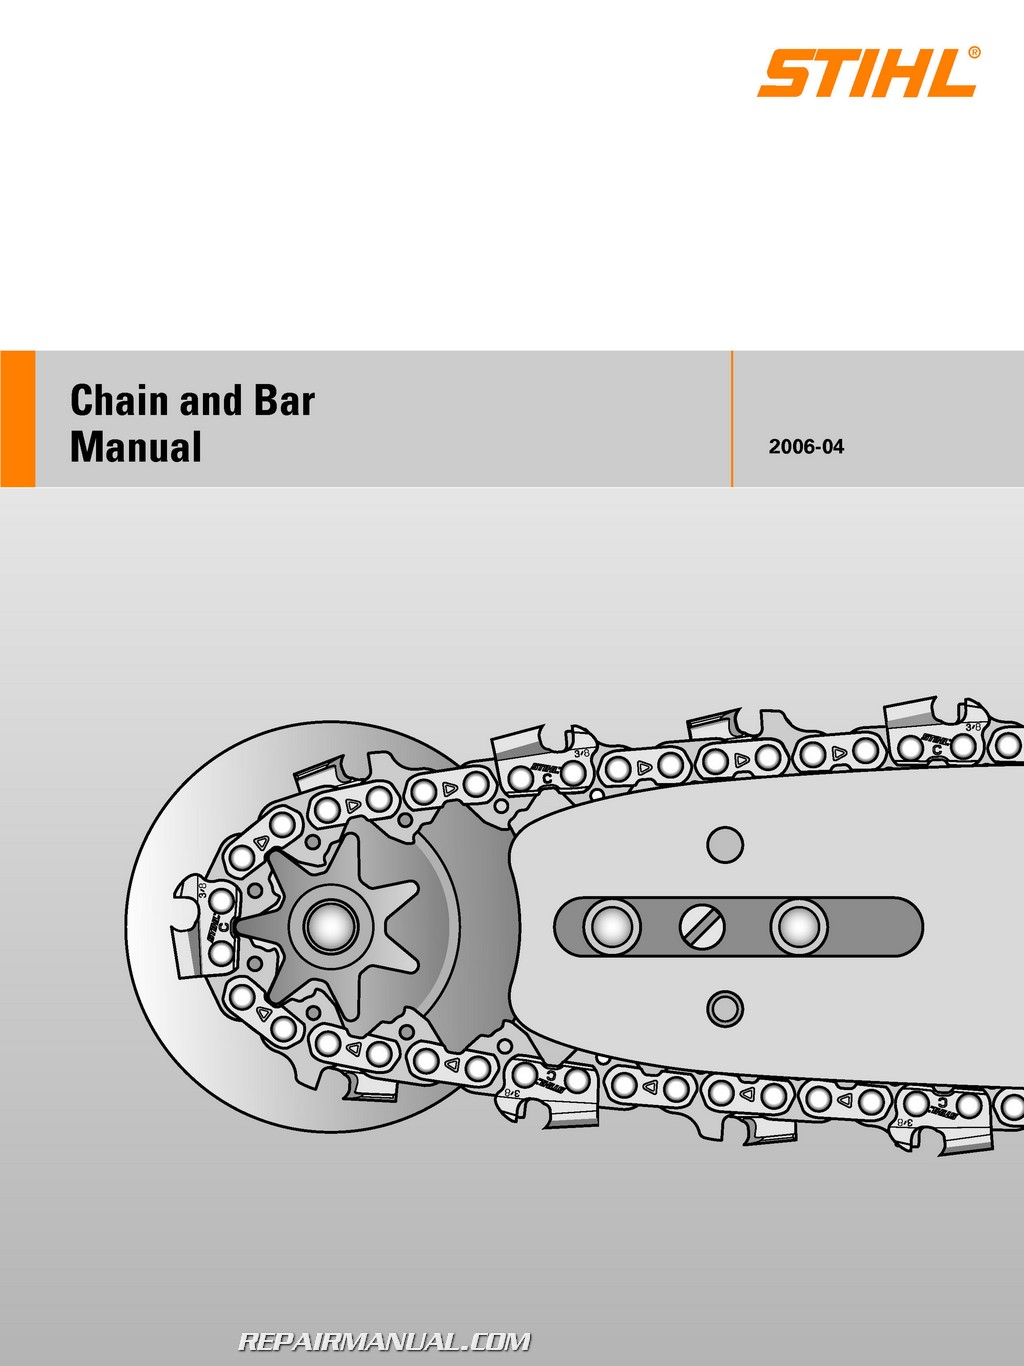 Stihl Chain and Bar Manual – Chainsaw